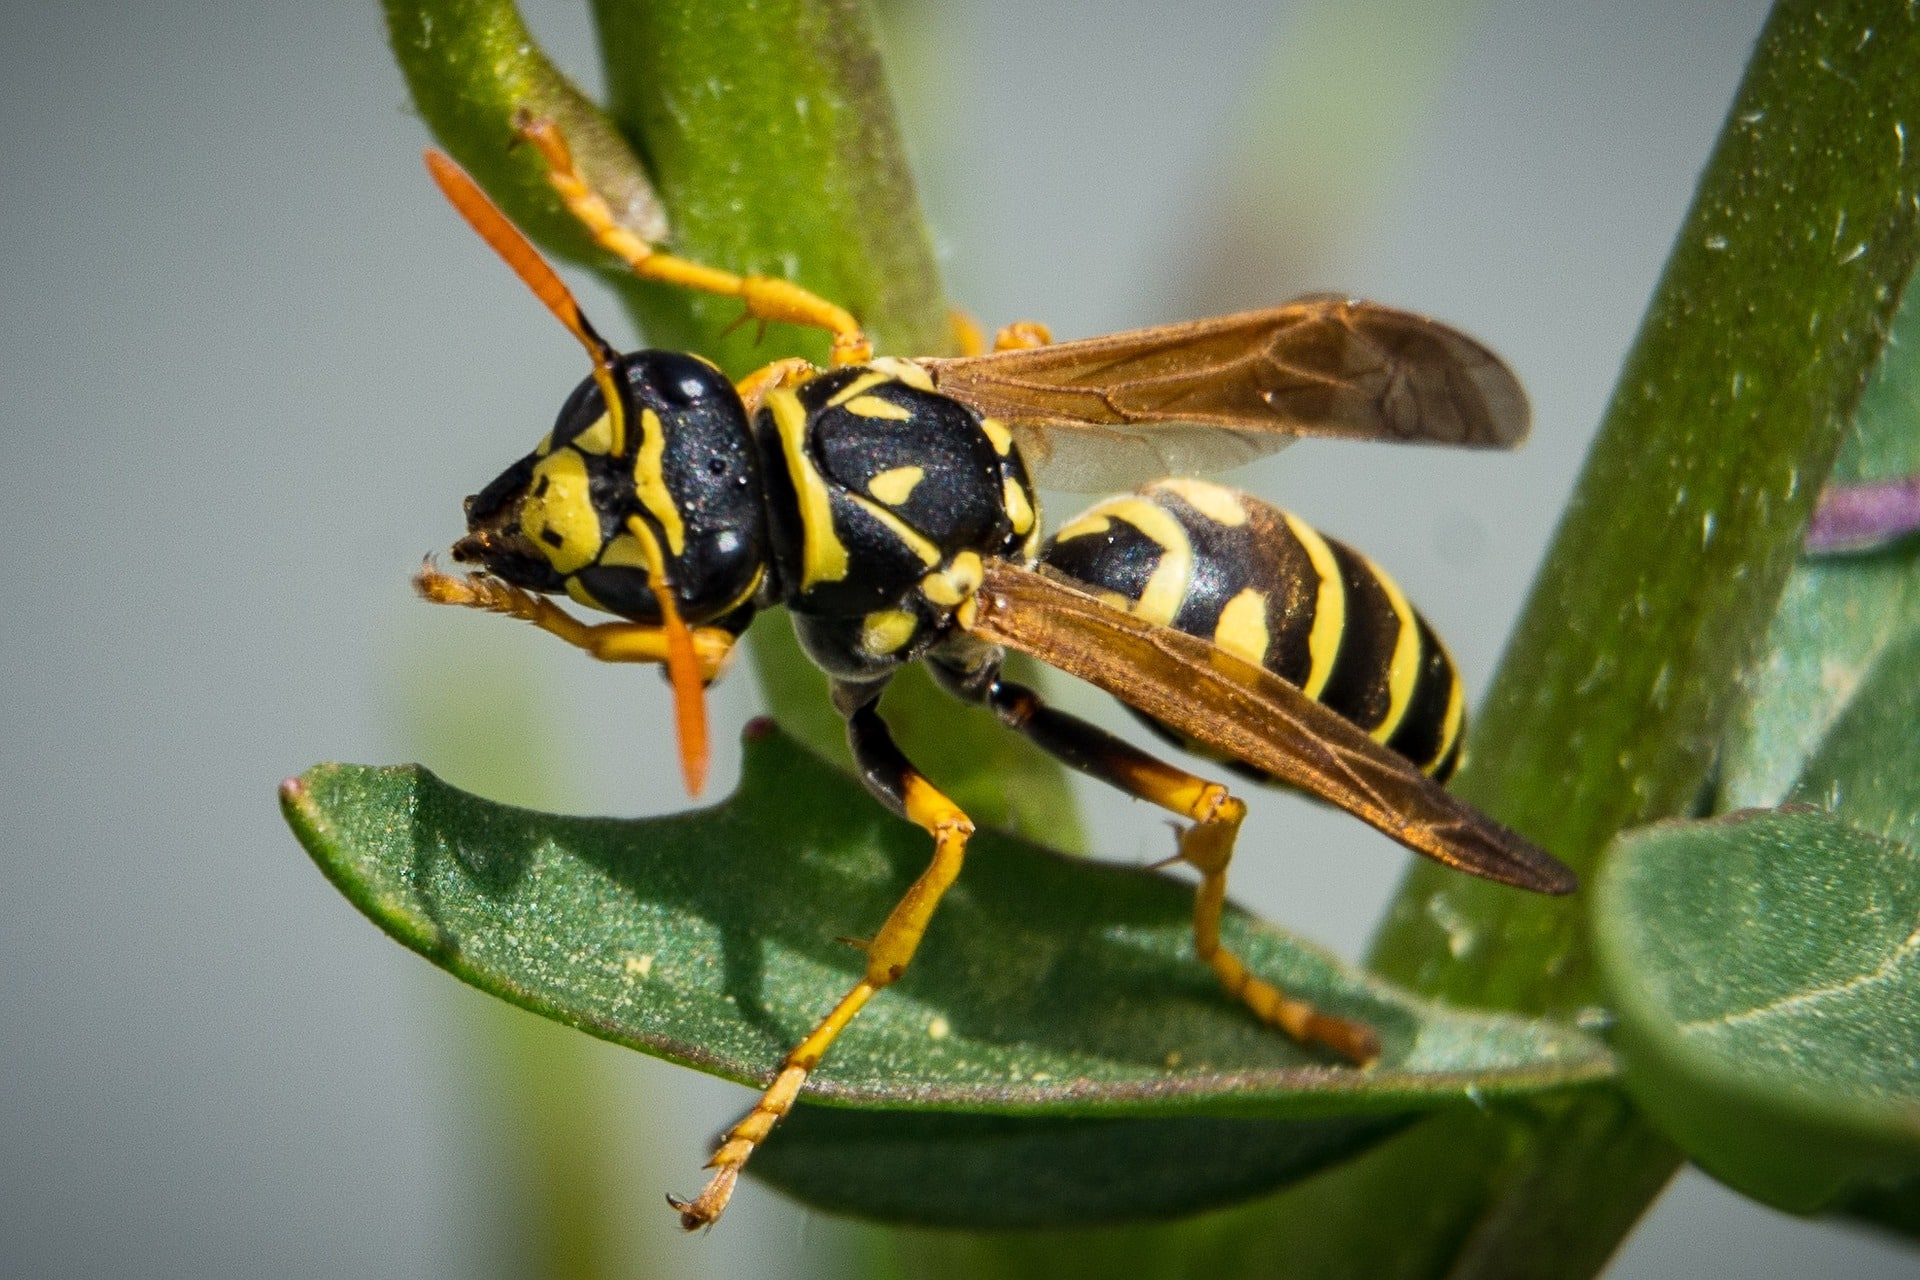 Wasp crawling on leaves of a plant.